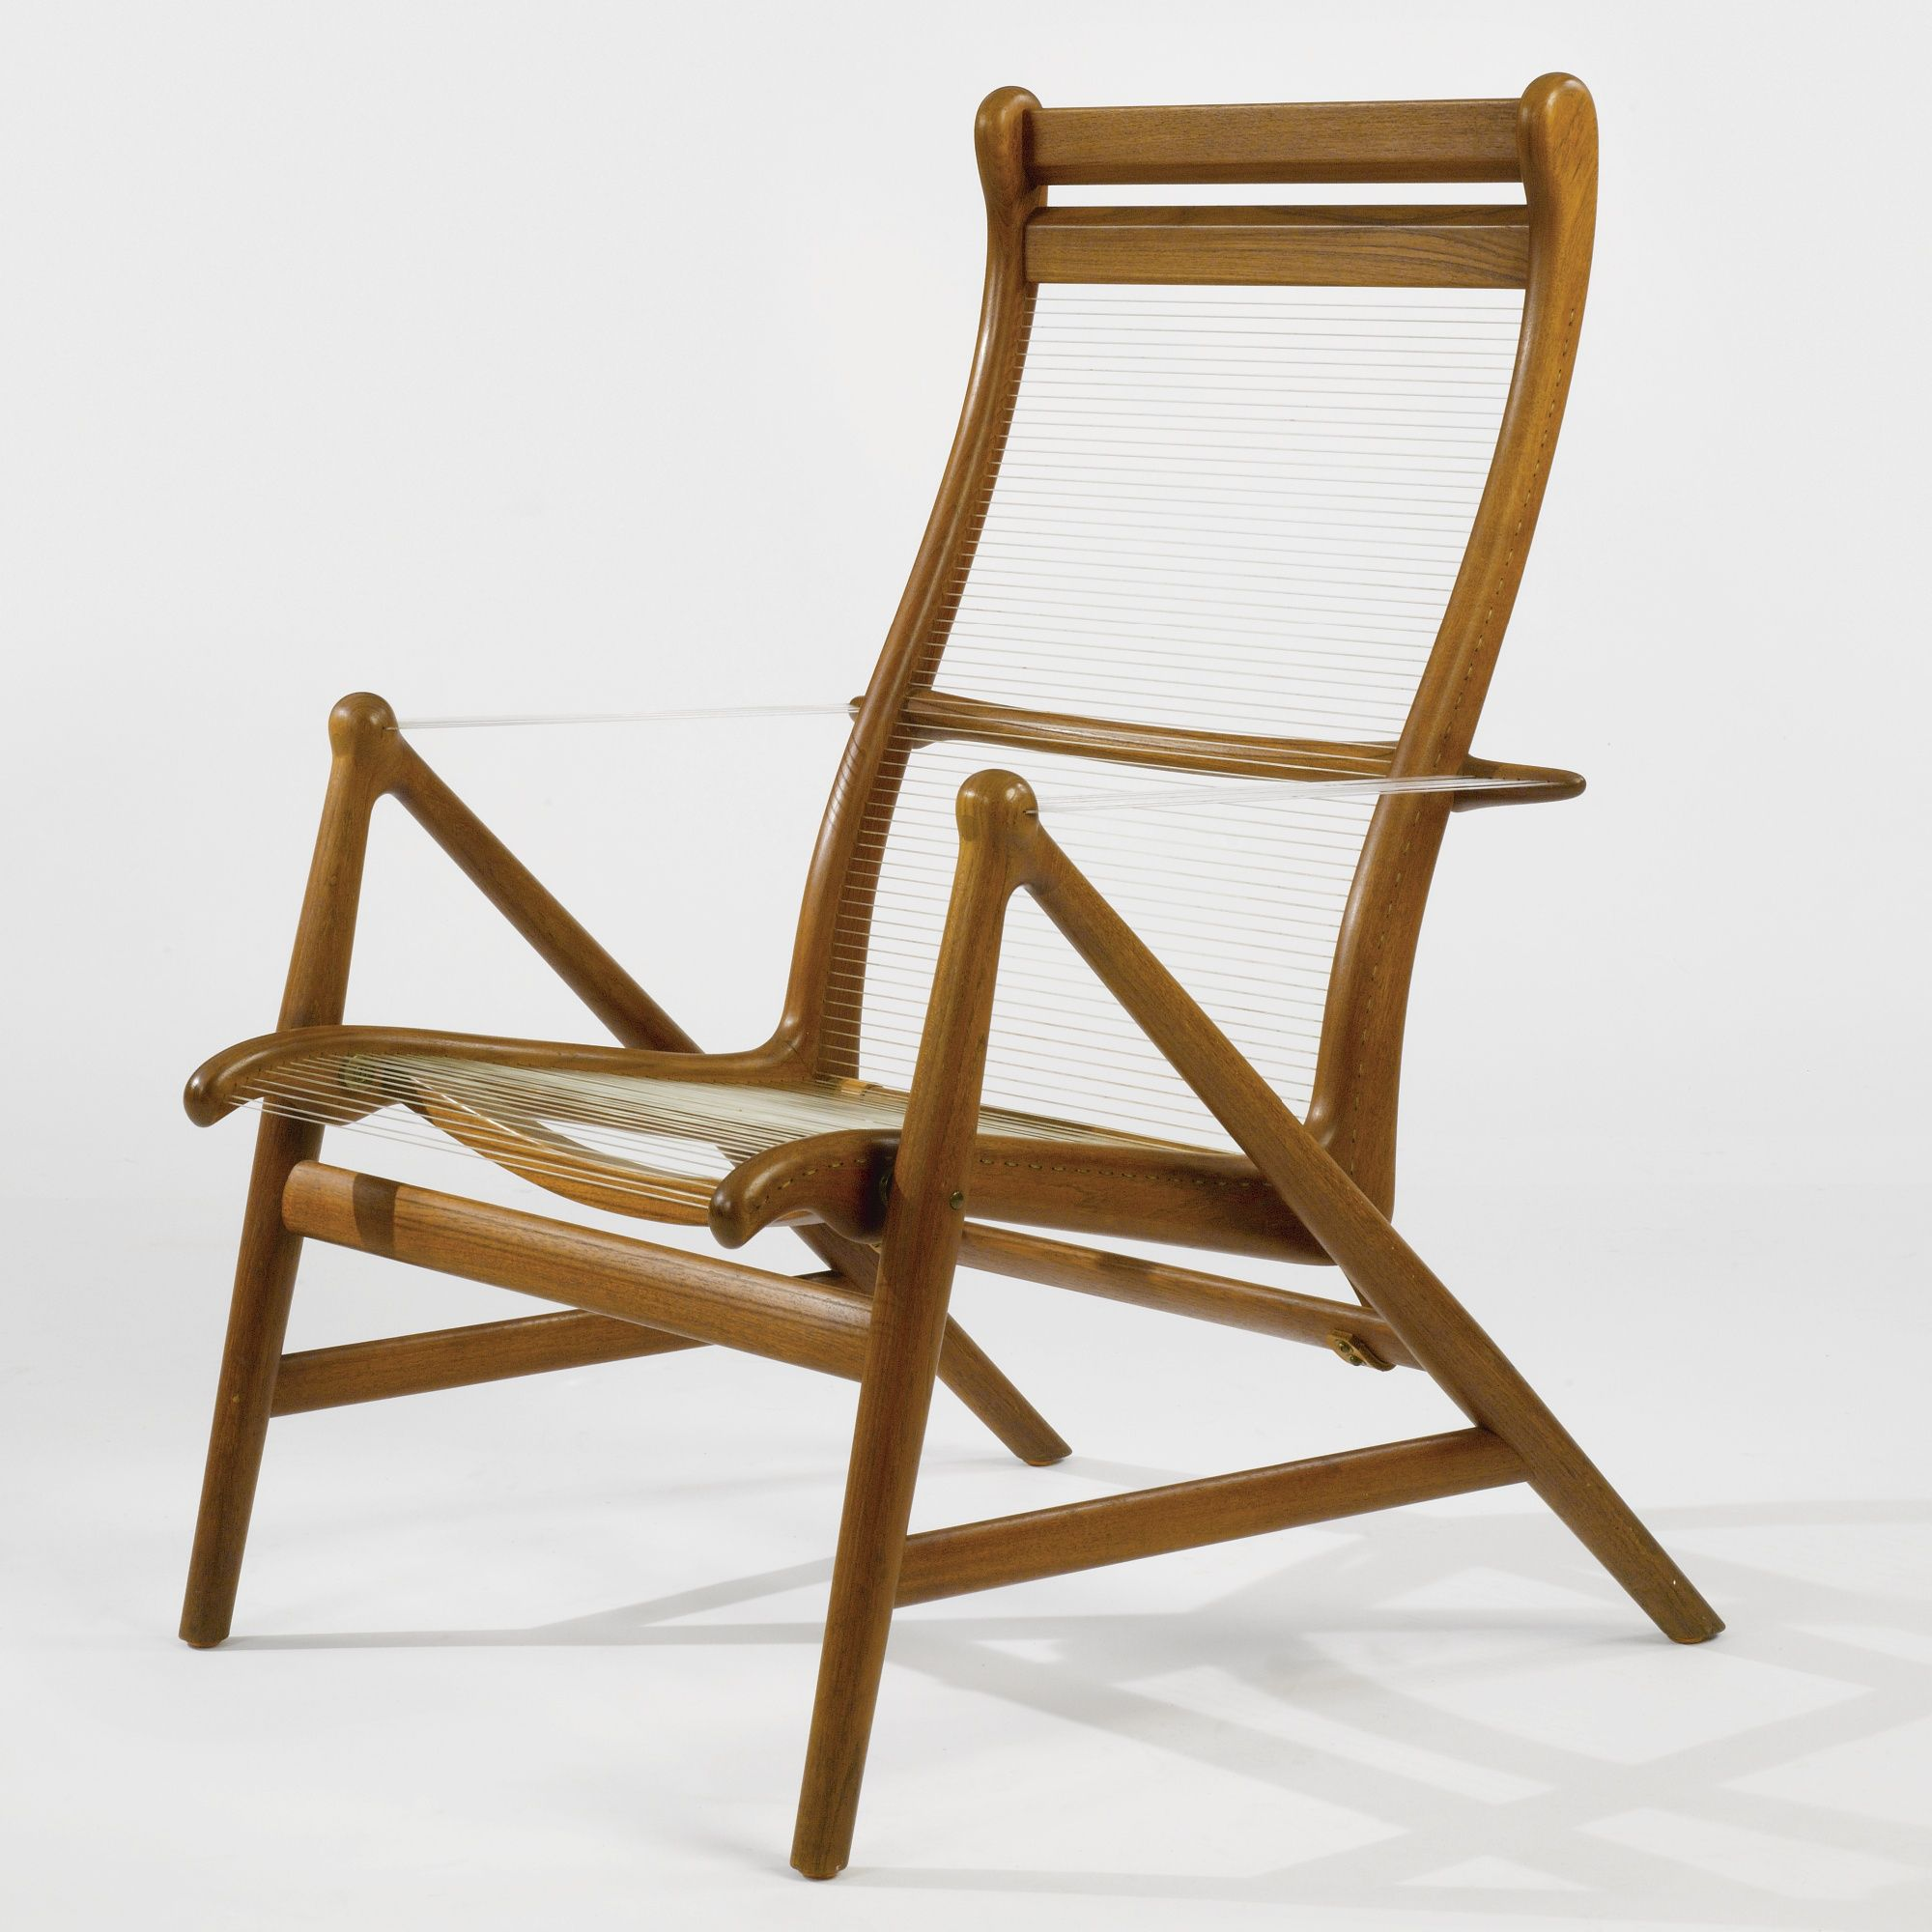 Pin By Ryan Pedersen On Furniture Ad: HELGE VESTERGAARD JENSEN AN IMPORTANT AND RARE ARMCHAIR